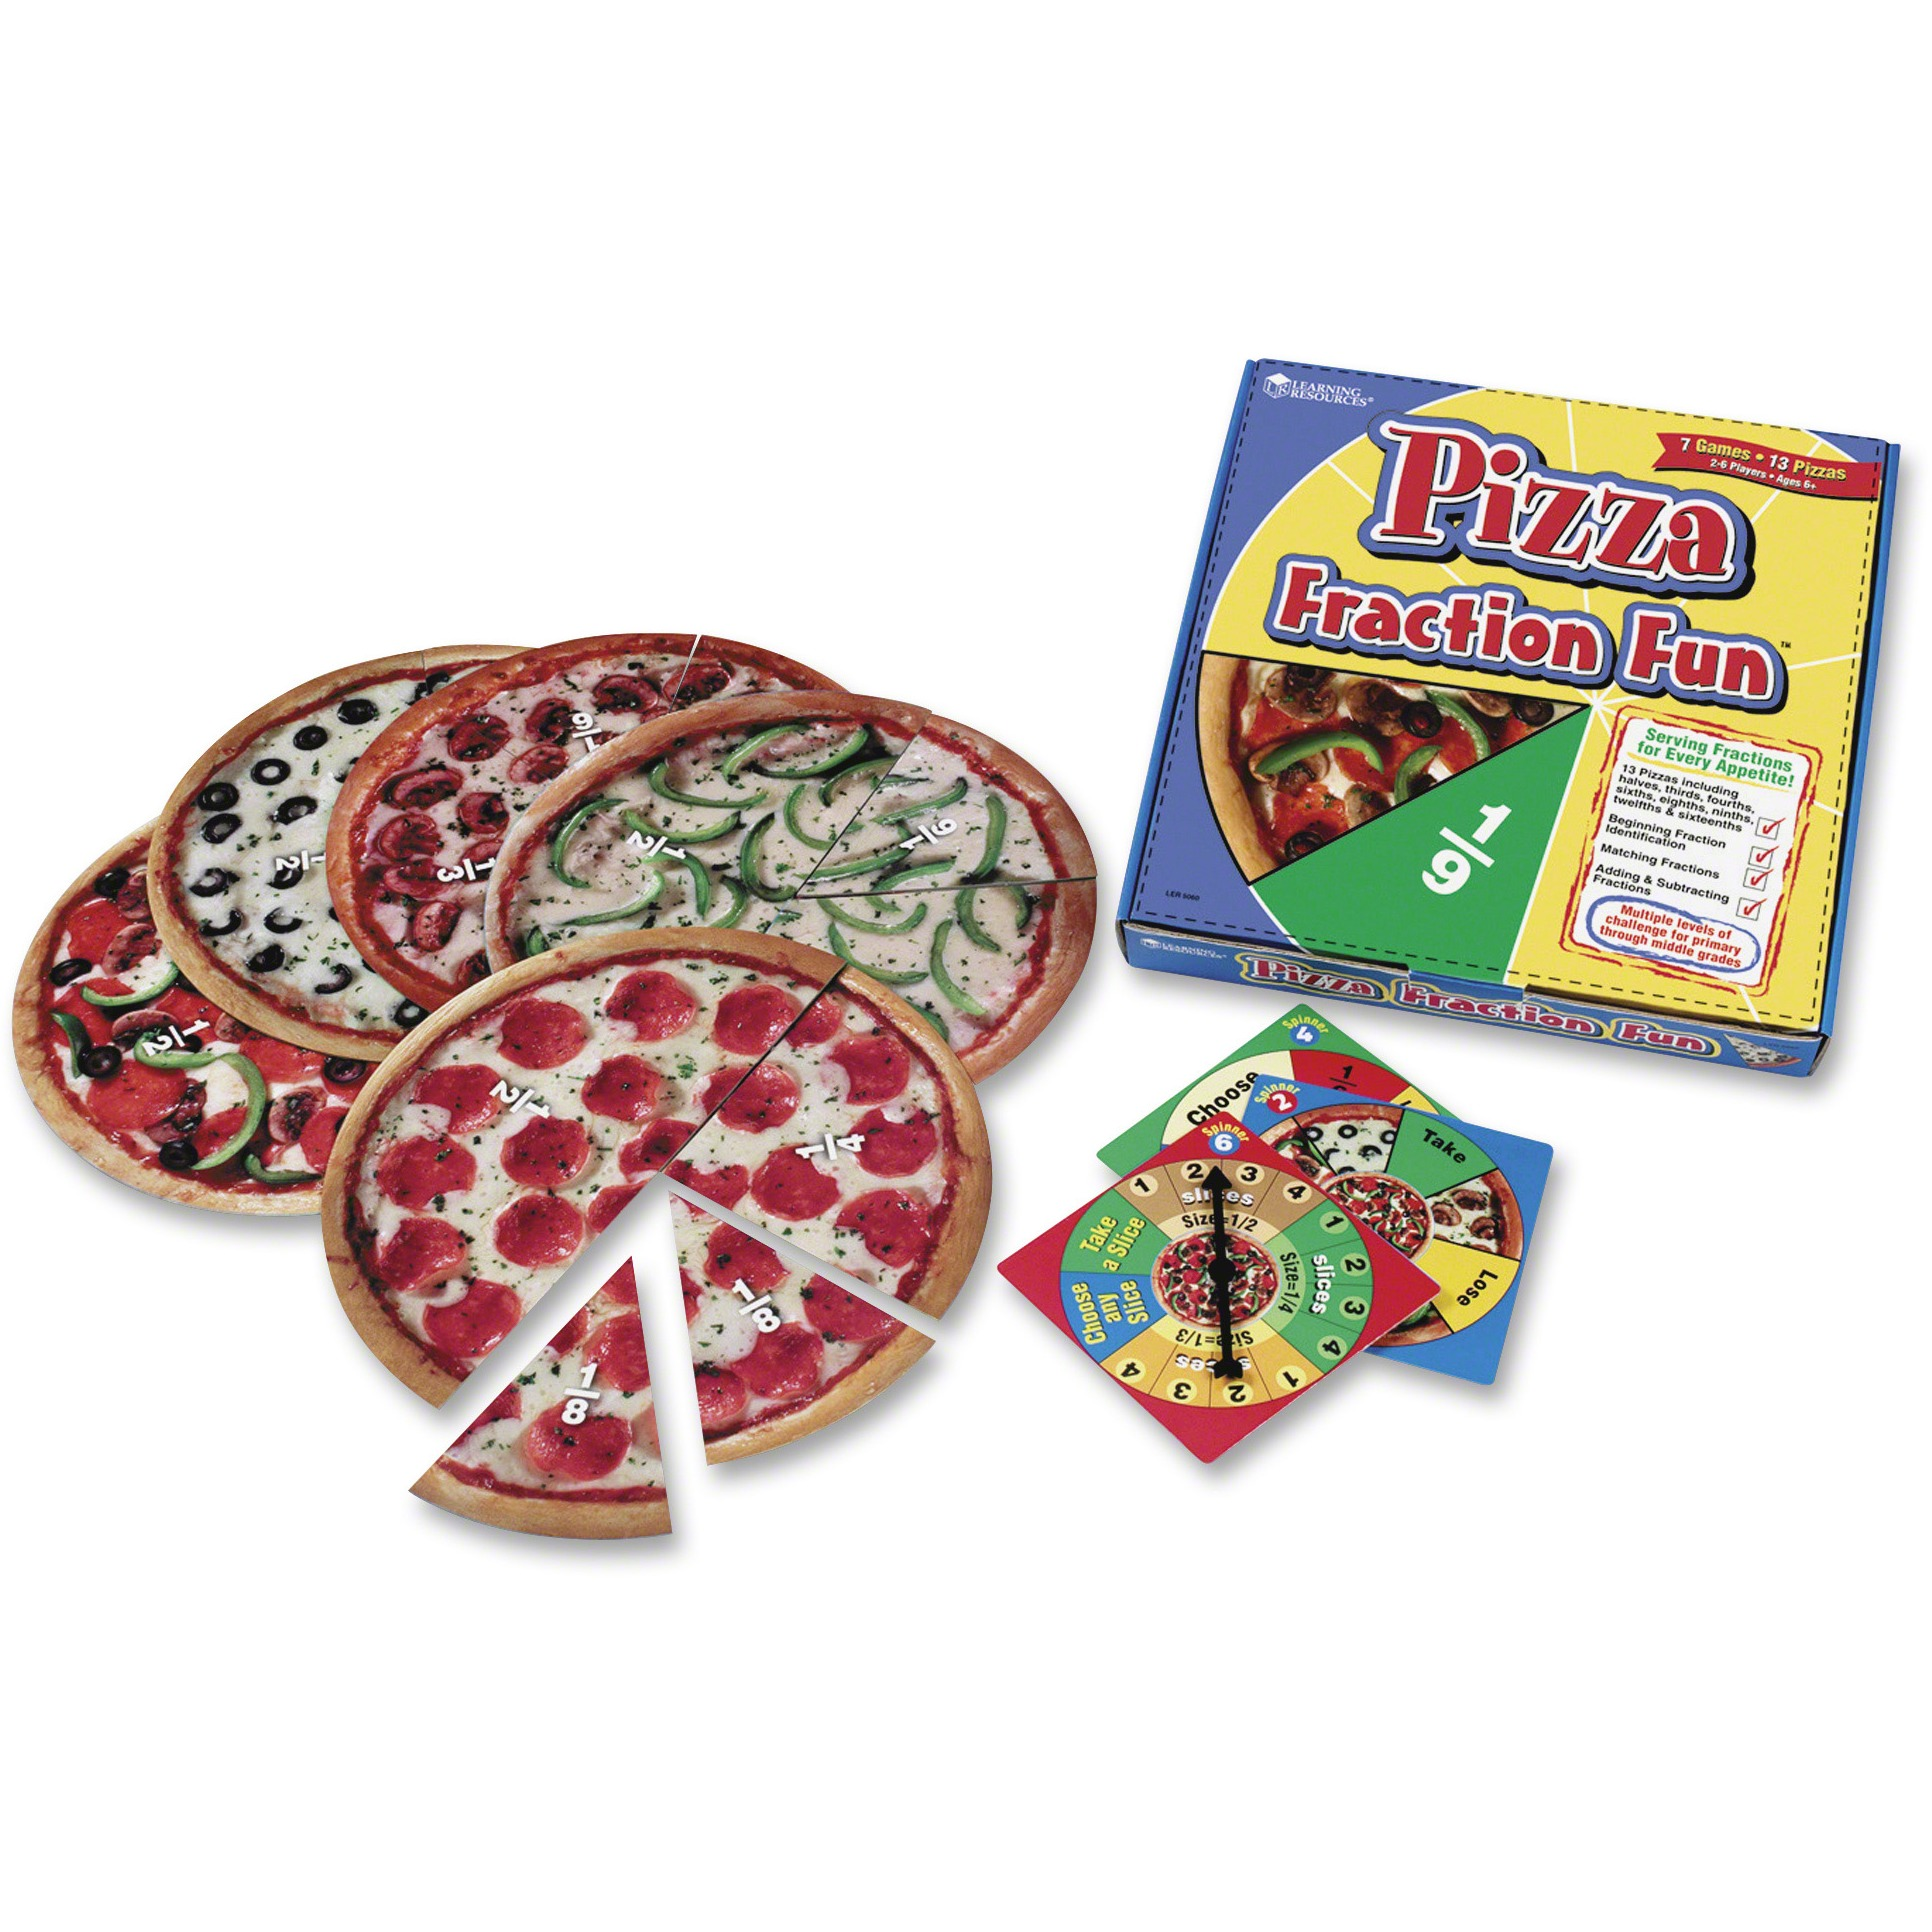 Learning Resources, LRN5060, Pizza Fraction Fun Game, 1 Each, Multi